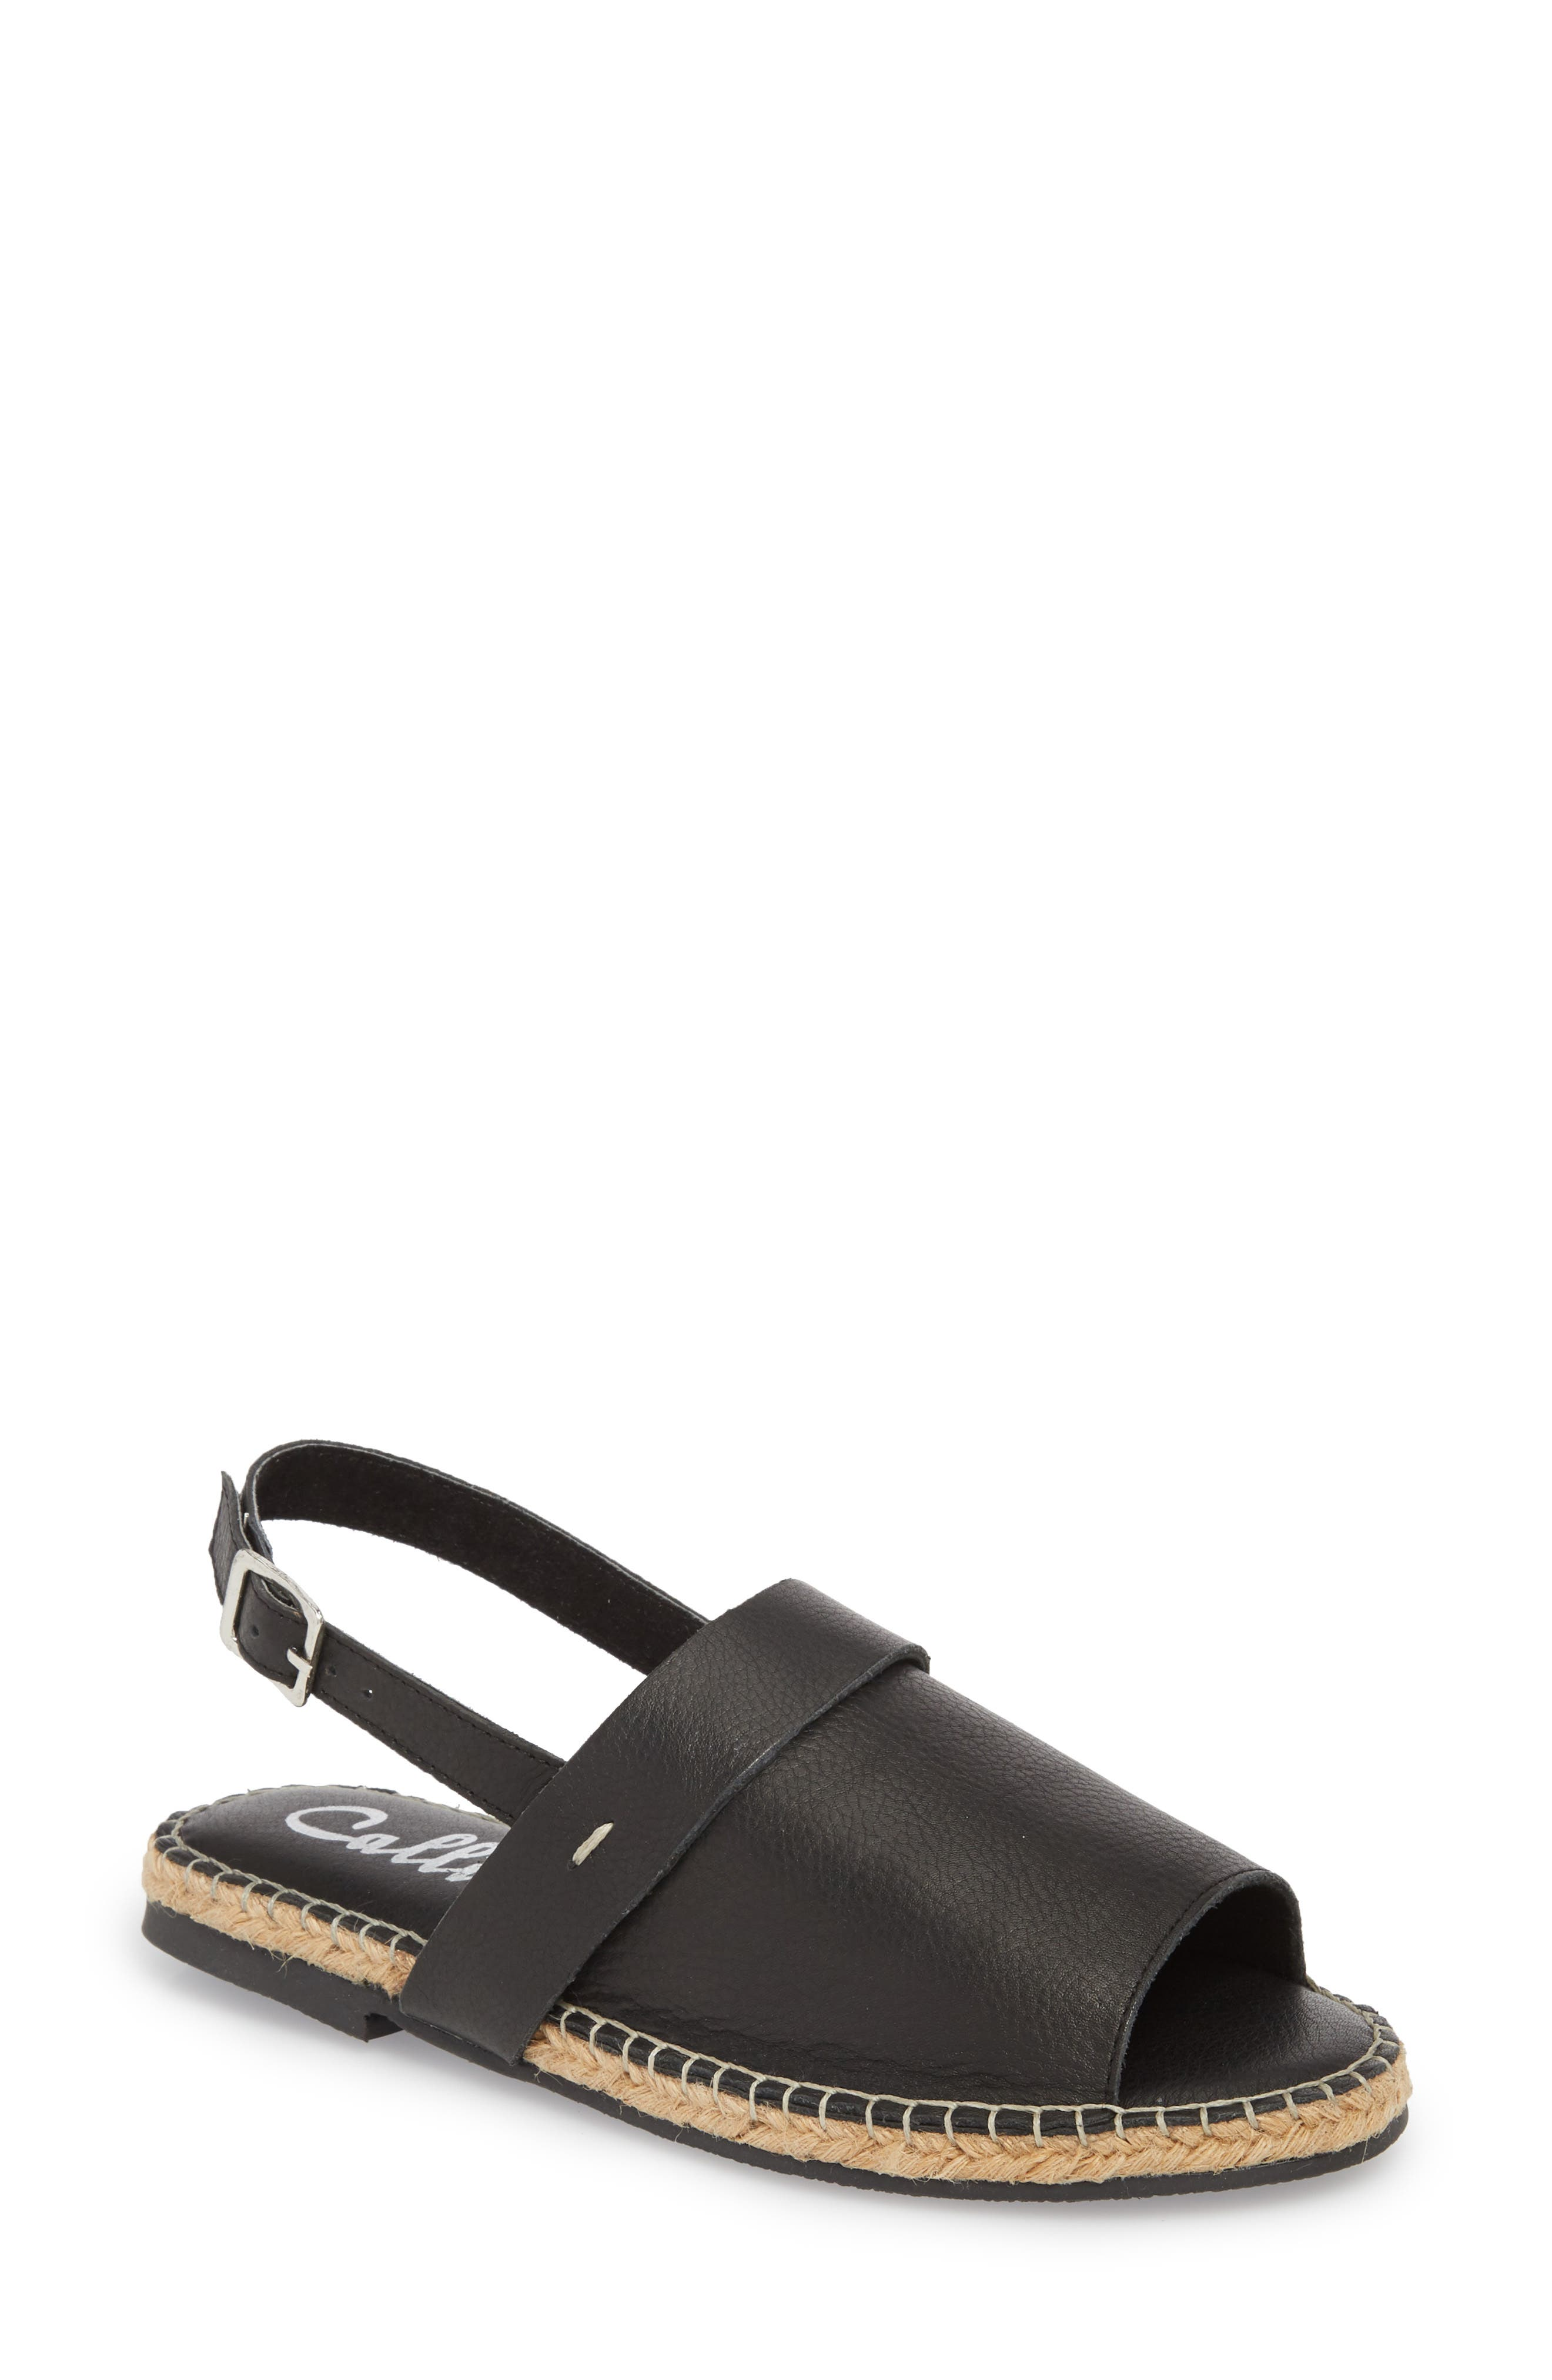 Turn Key Espadrille Sandal,                         Main,                         color, BLACK LEATHER